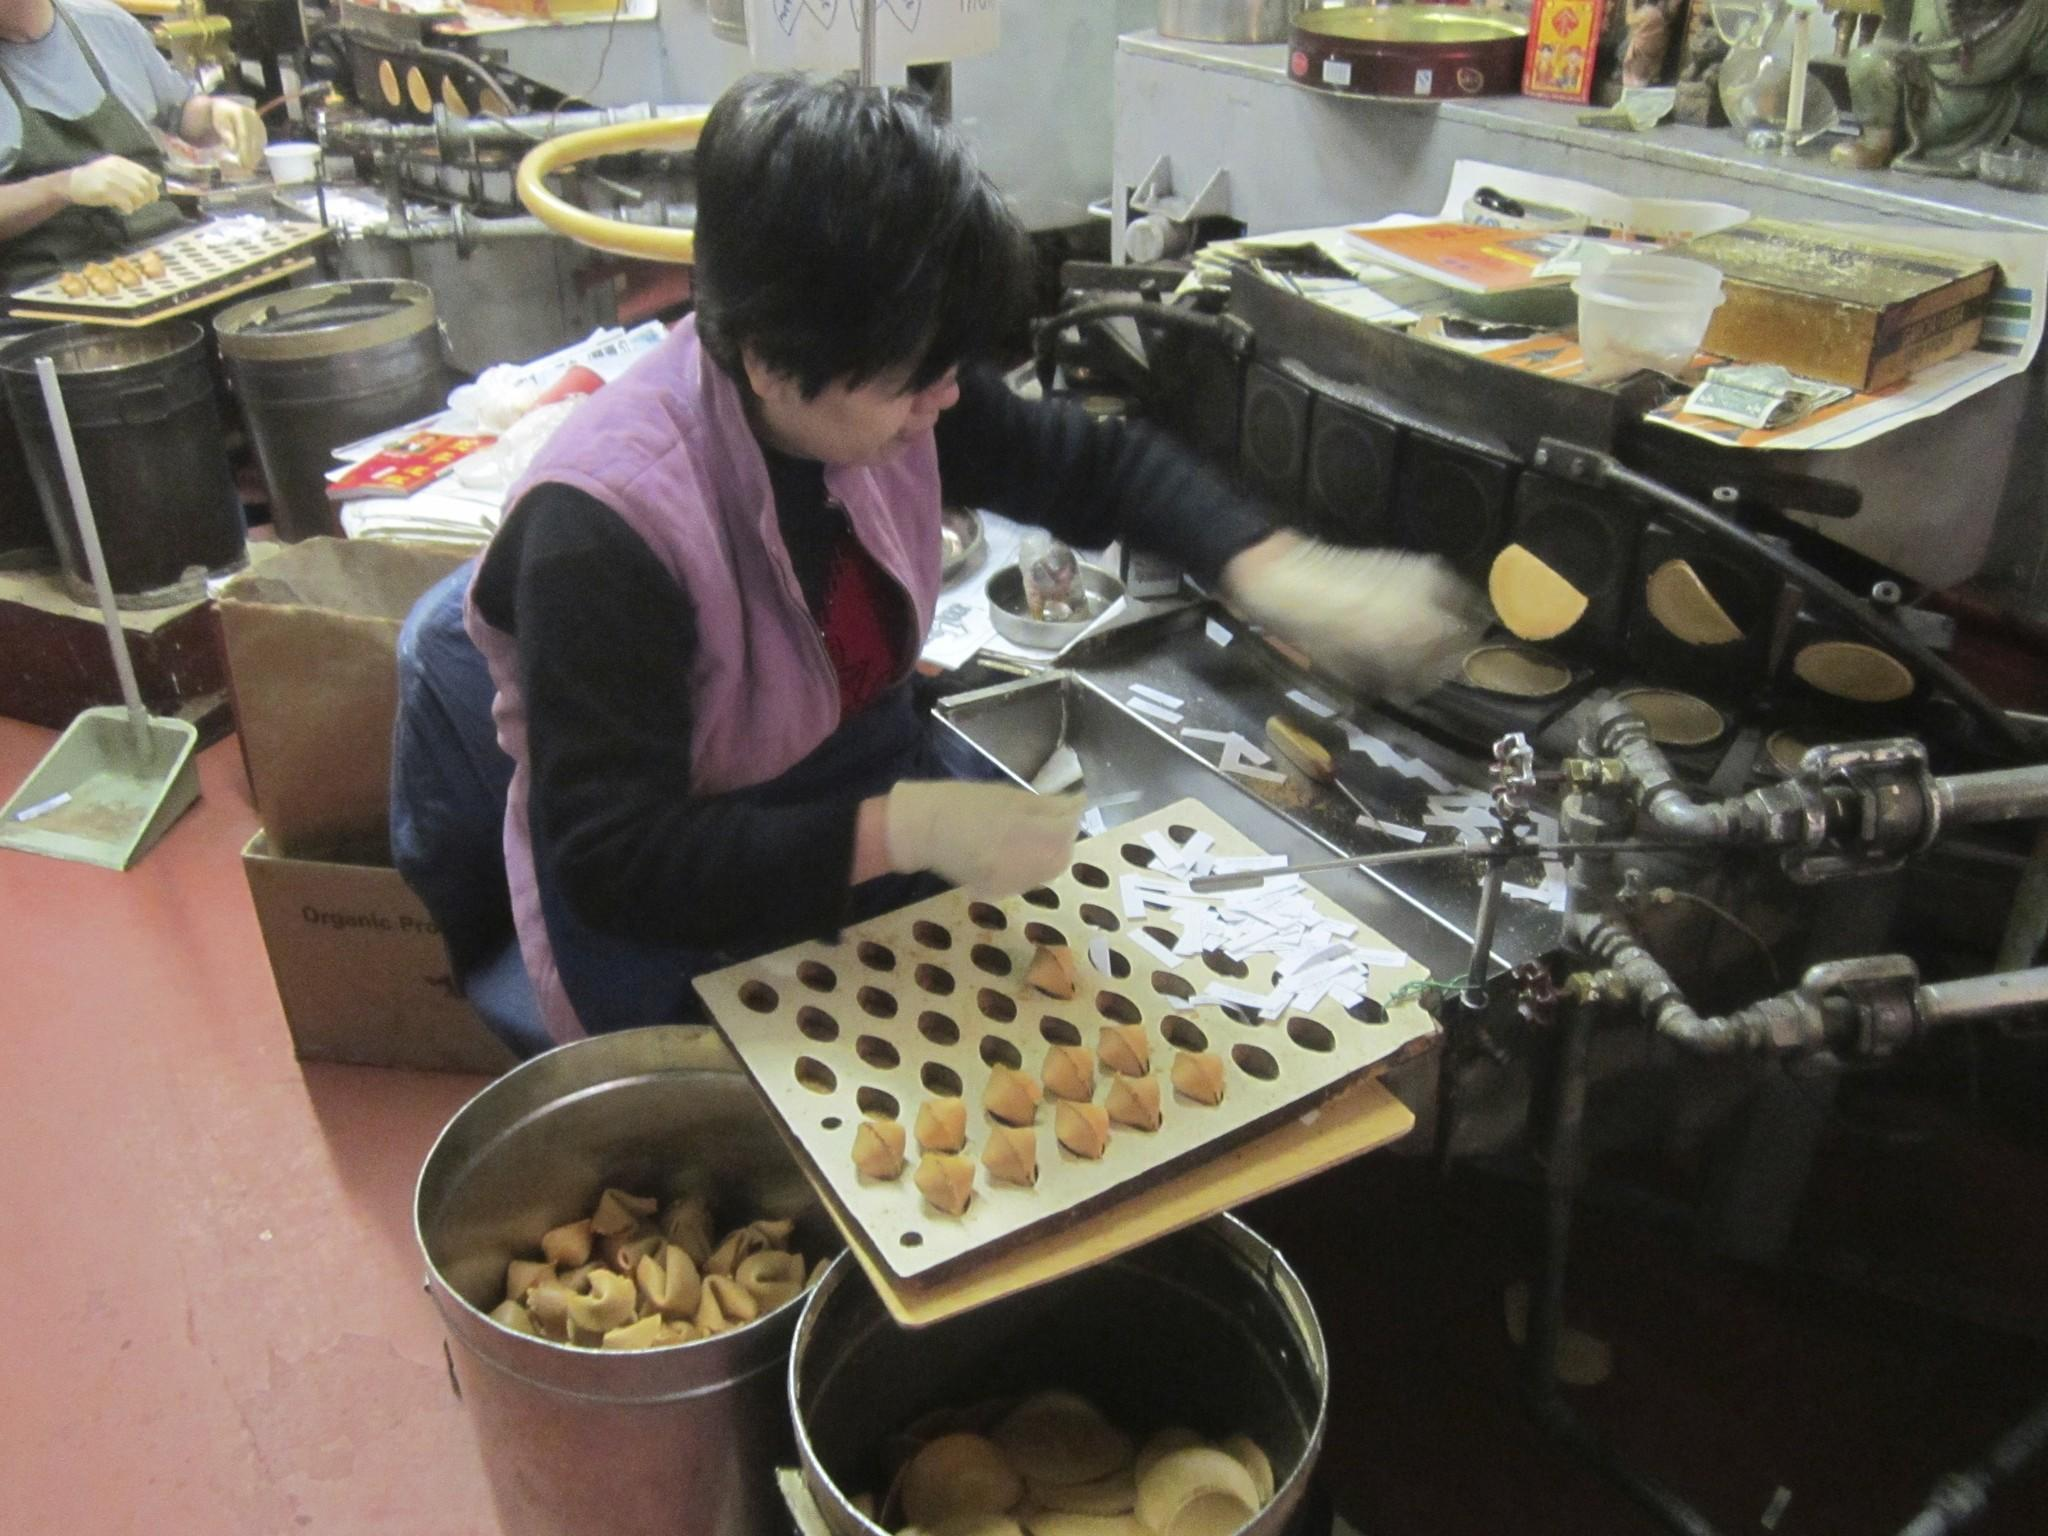 A woman deftly folds and inserts fortunes into cooling cookies at the Golden Gate Fortune Cookie Company, which produces 20,000 handmade furtune cookies a day in San Francisco's Chinatown.